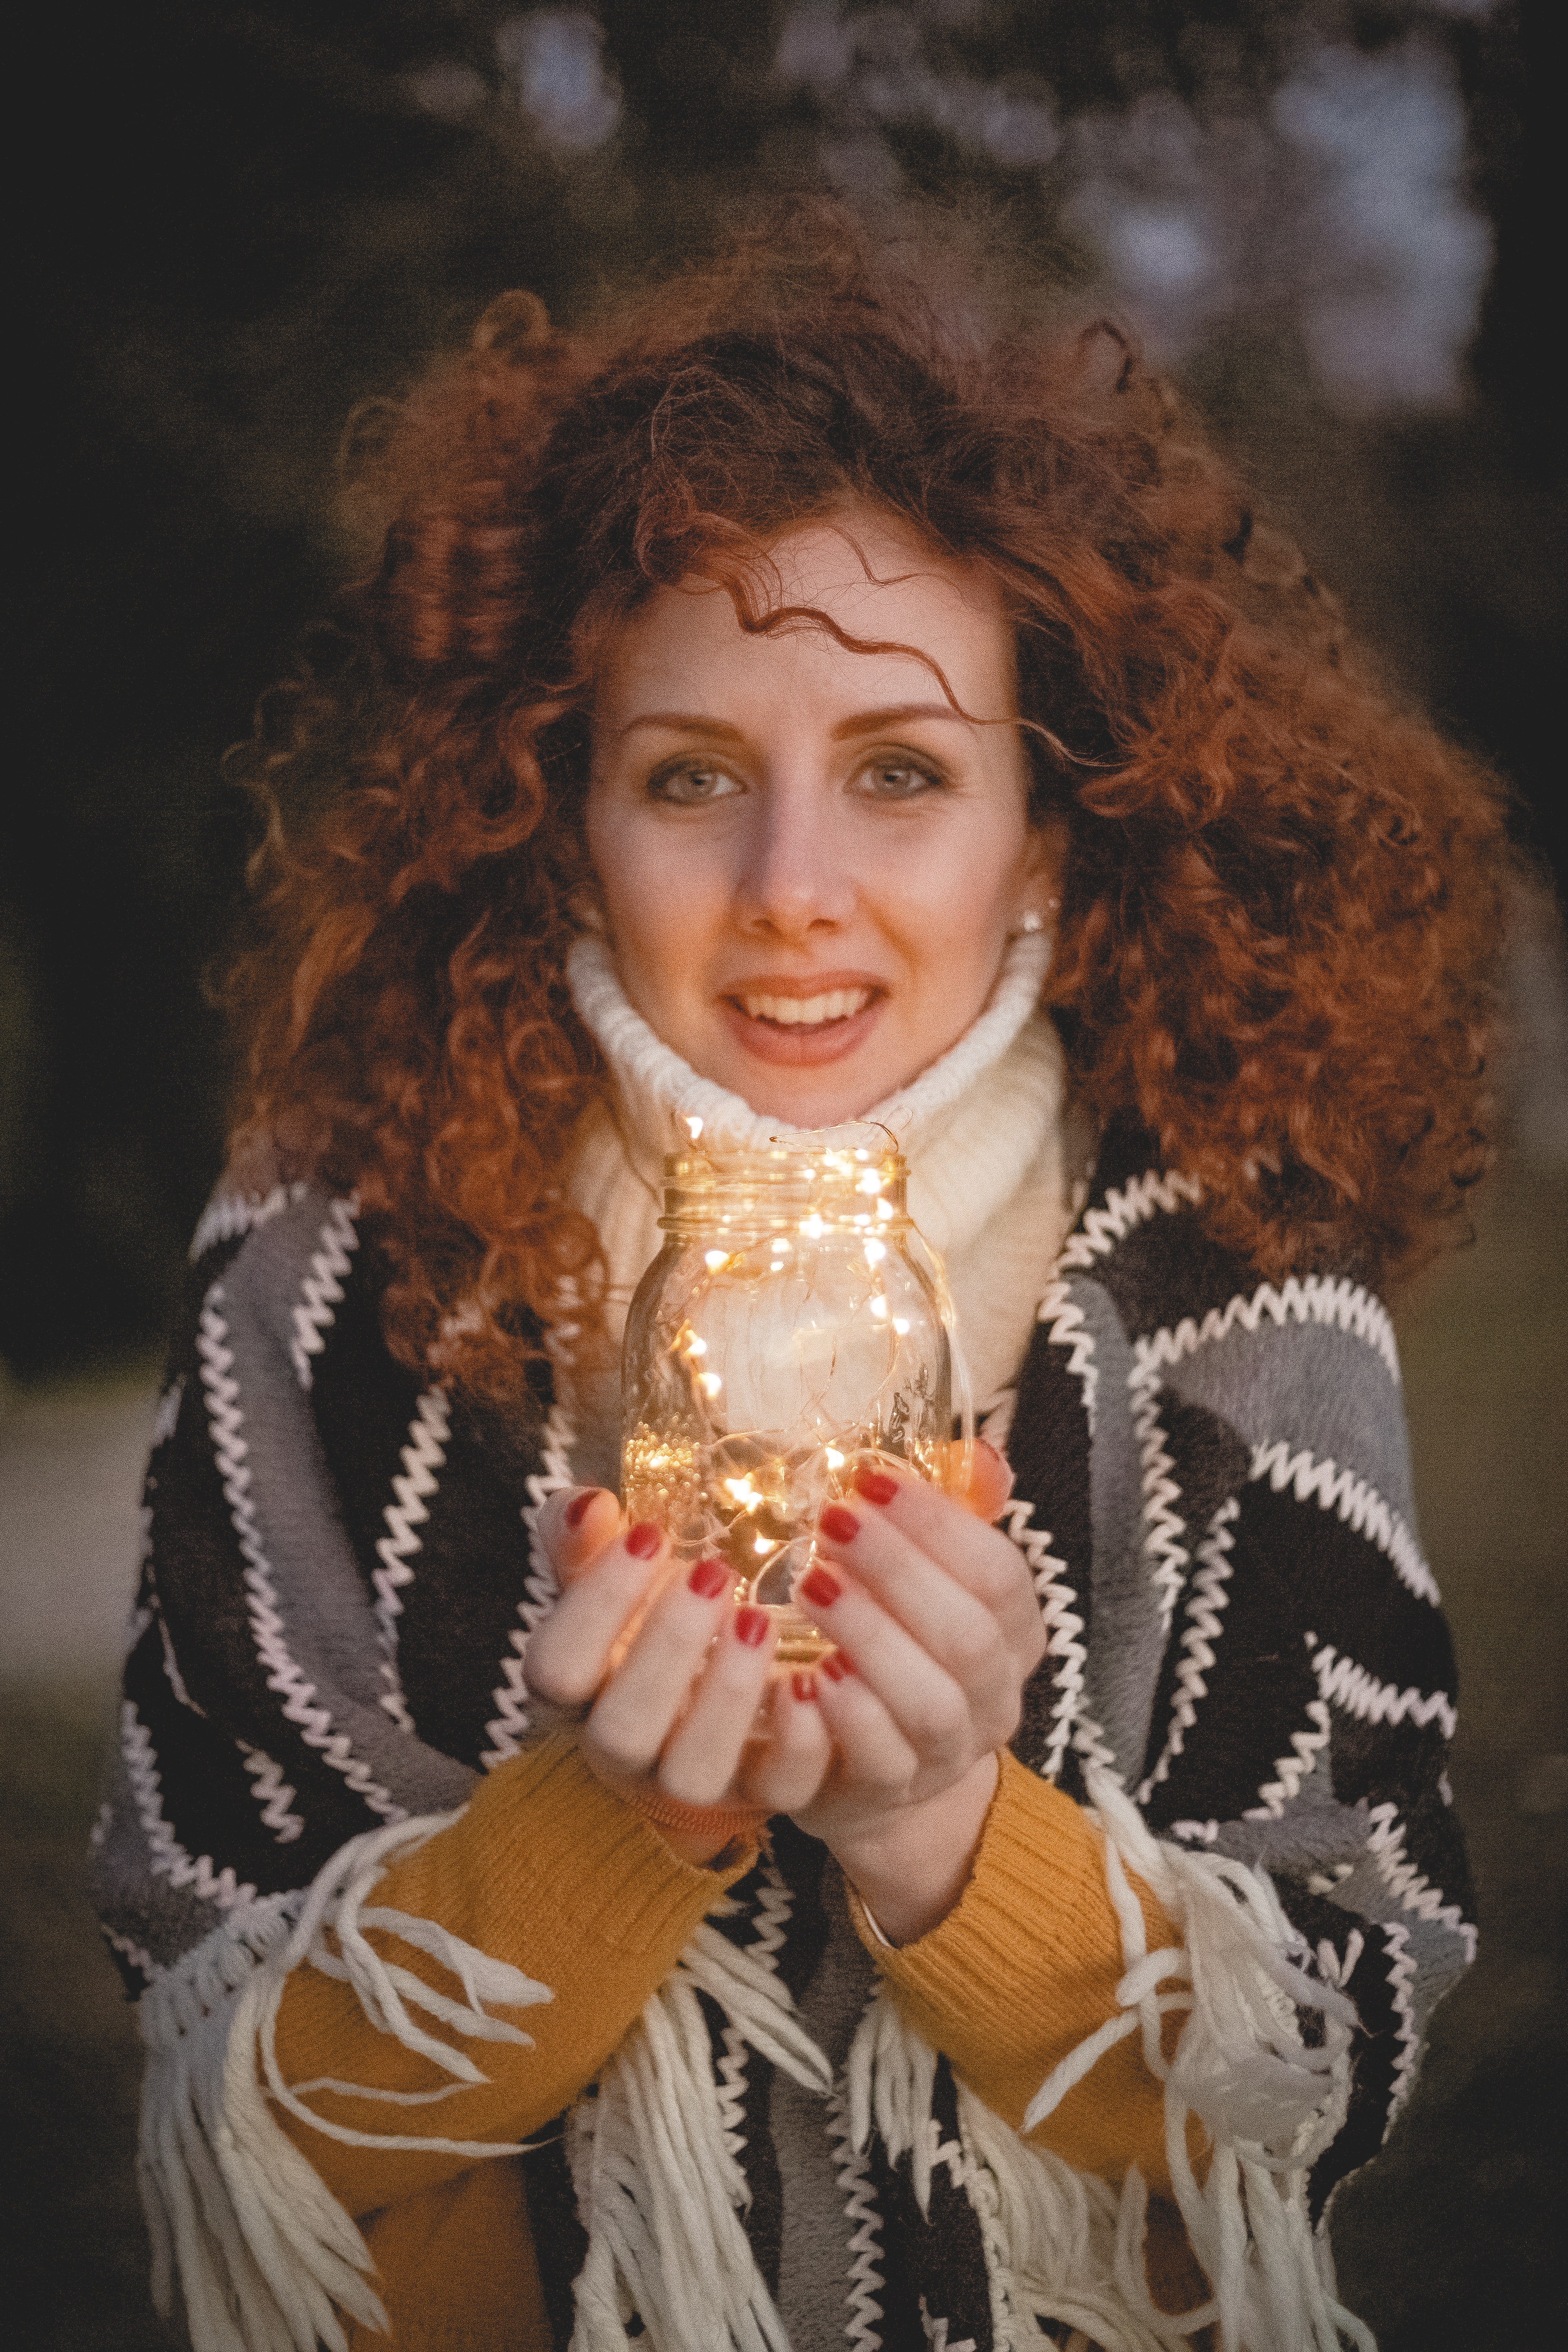 Woman holding clear glass jar with string lights photo